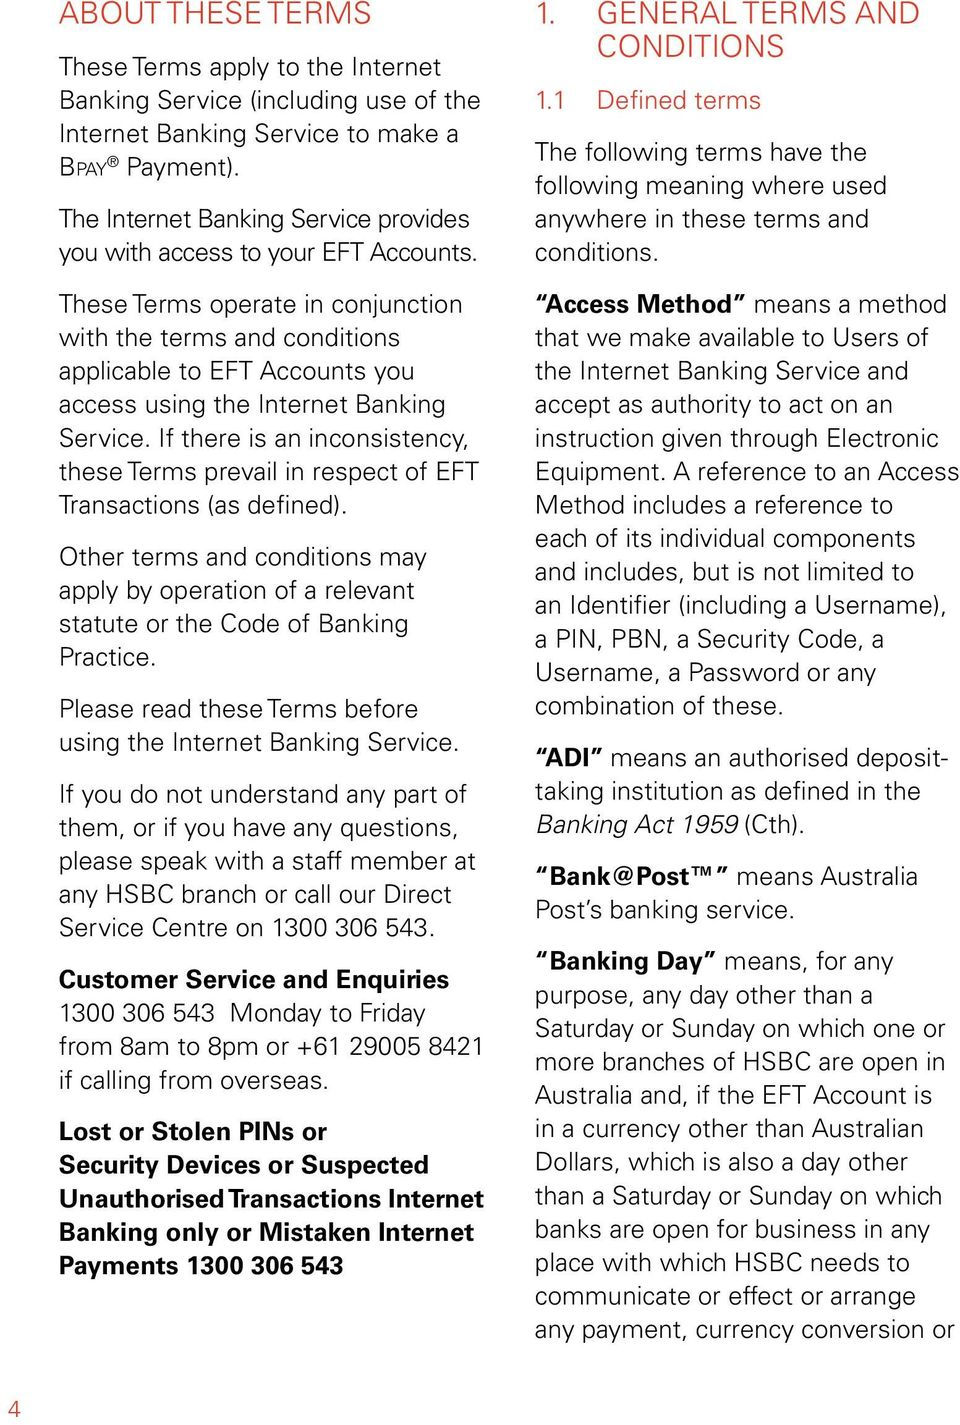 These Terms operate in conjnction with the terms and conditions applicable to EFT Acconts yo access sing the Internet Banking Service.